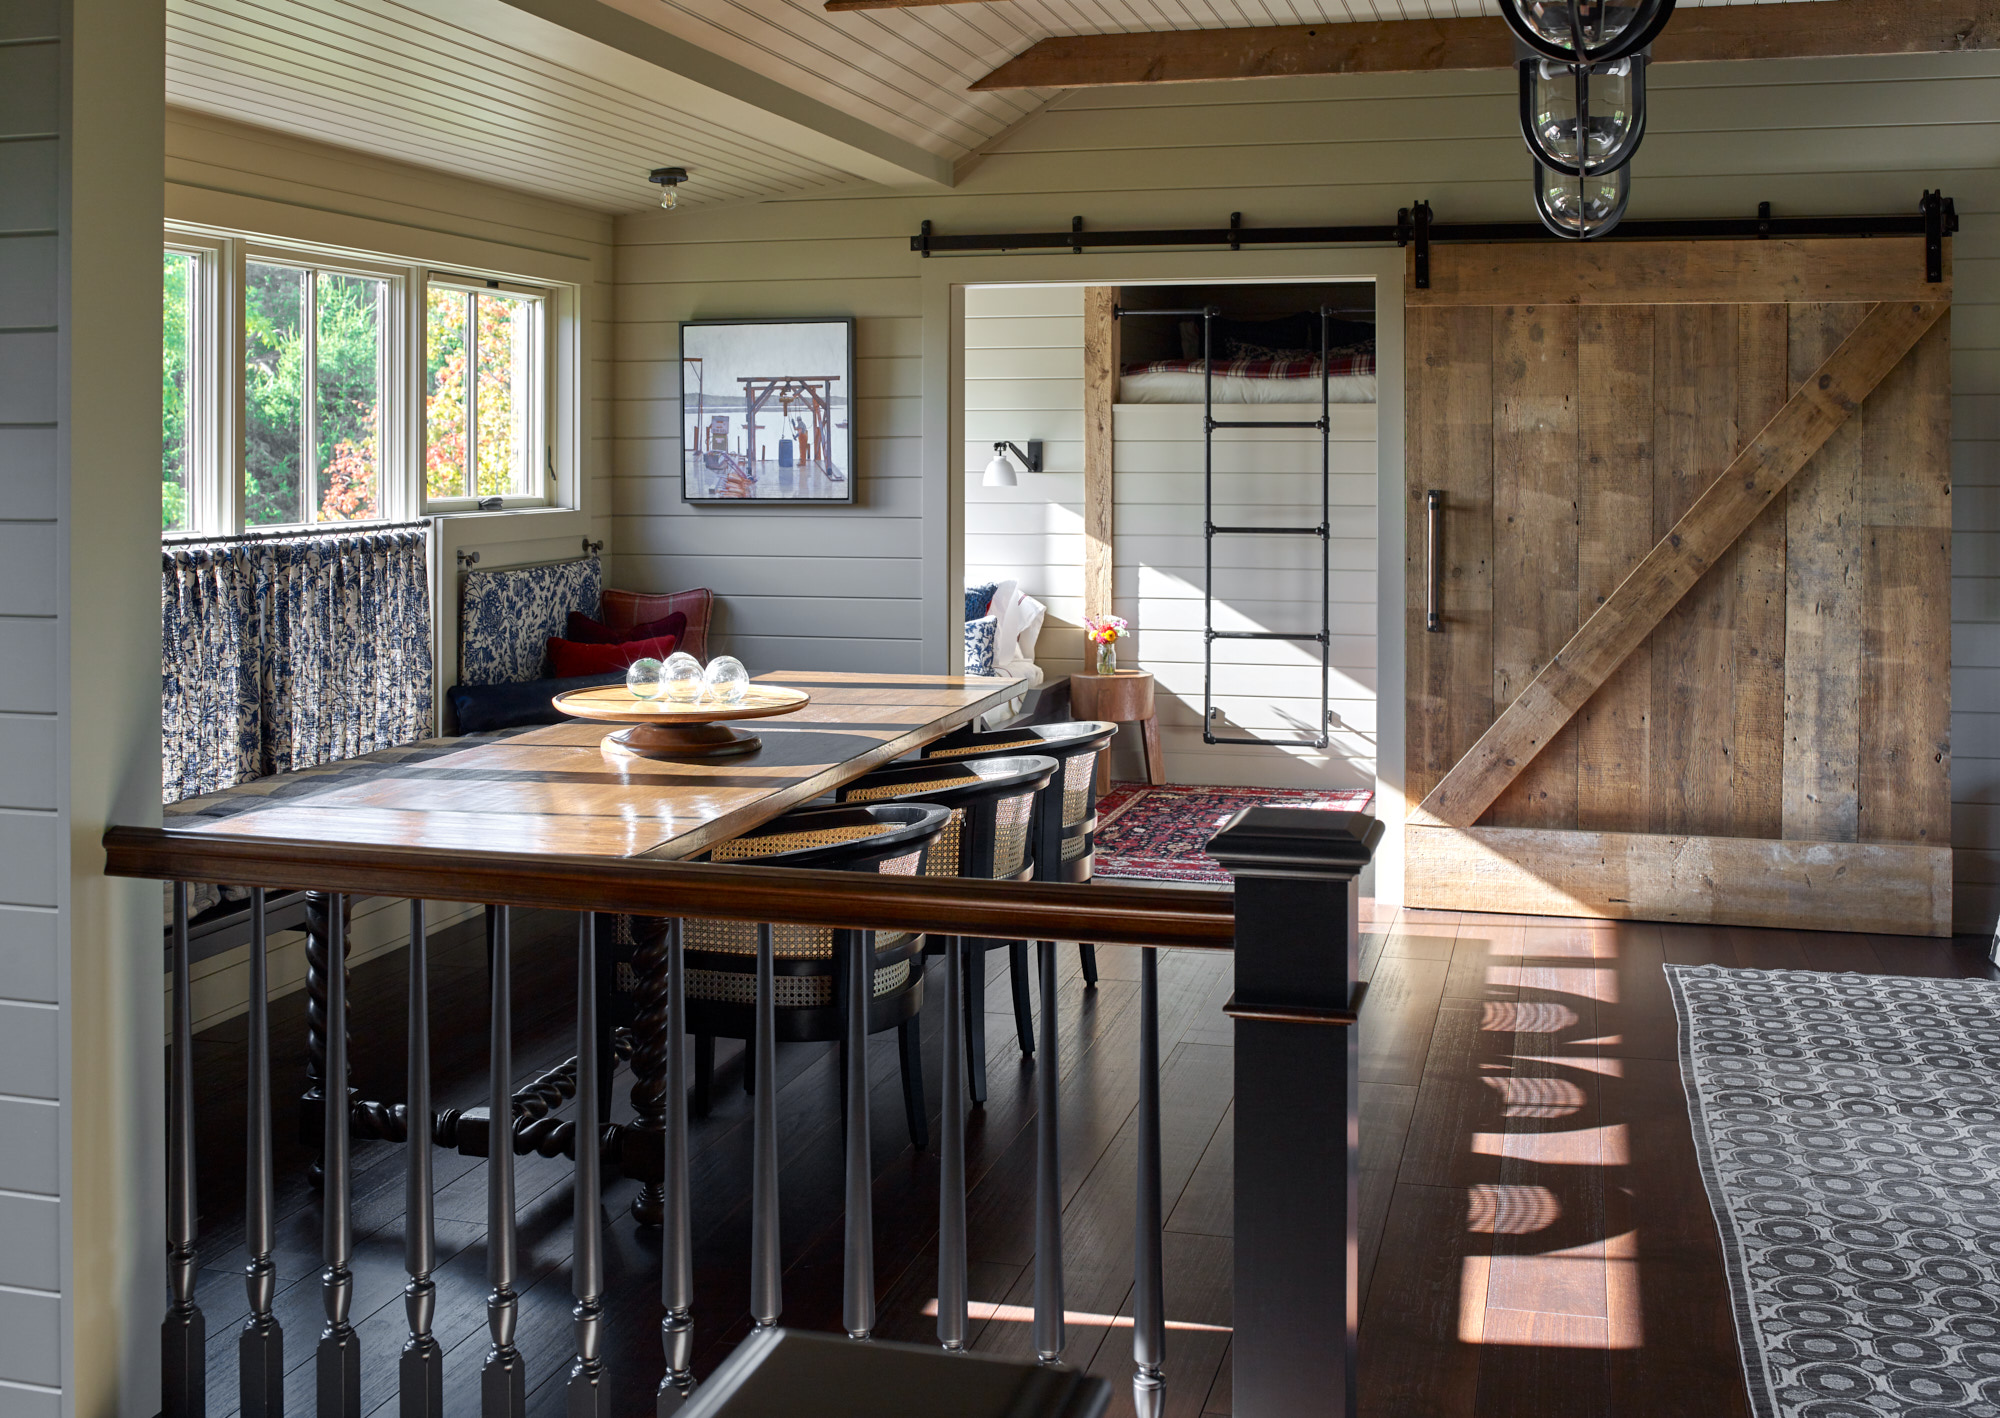 Kitchen area with rustic design and sliding barn door